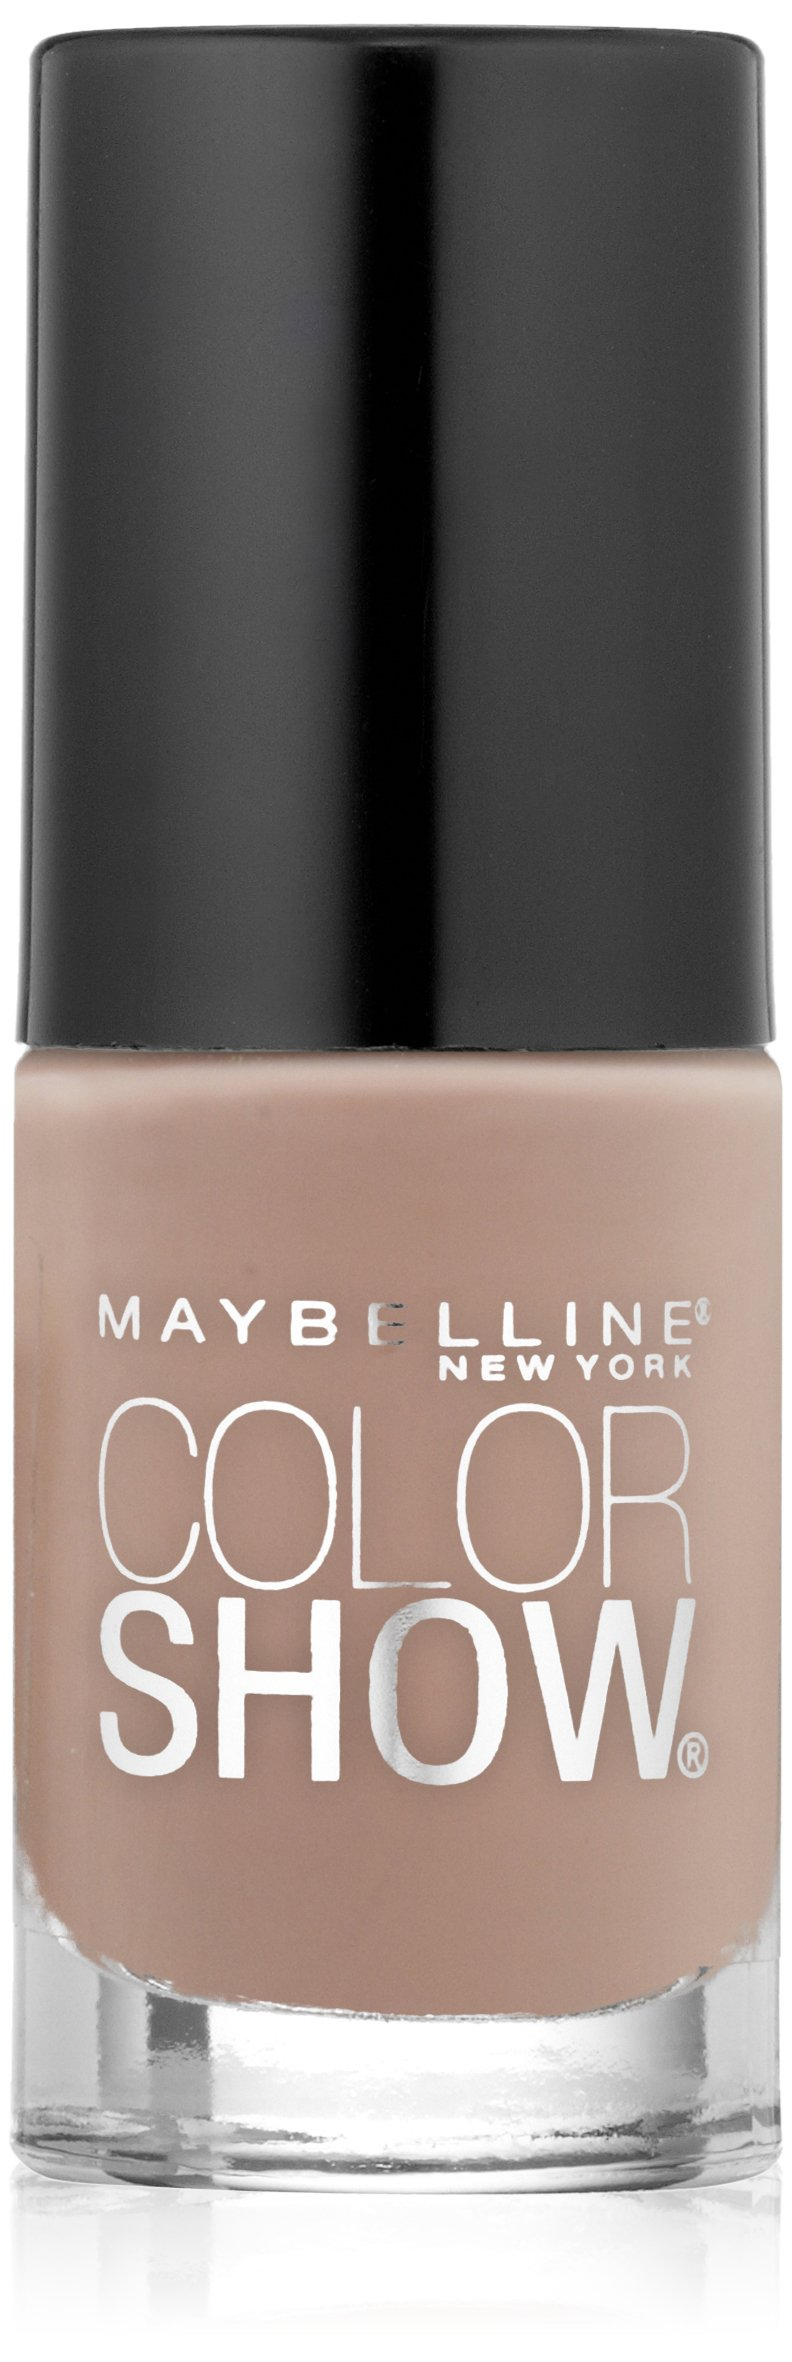 Amazon.com : Maybelline New York Color Show the Blush Nudes Nail ...